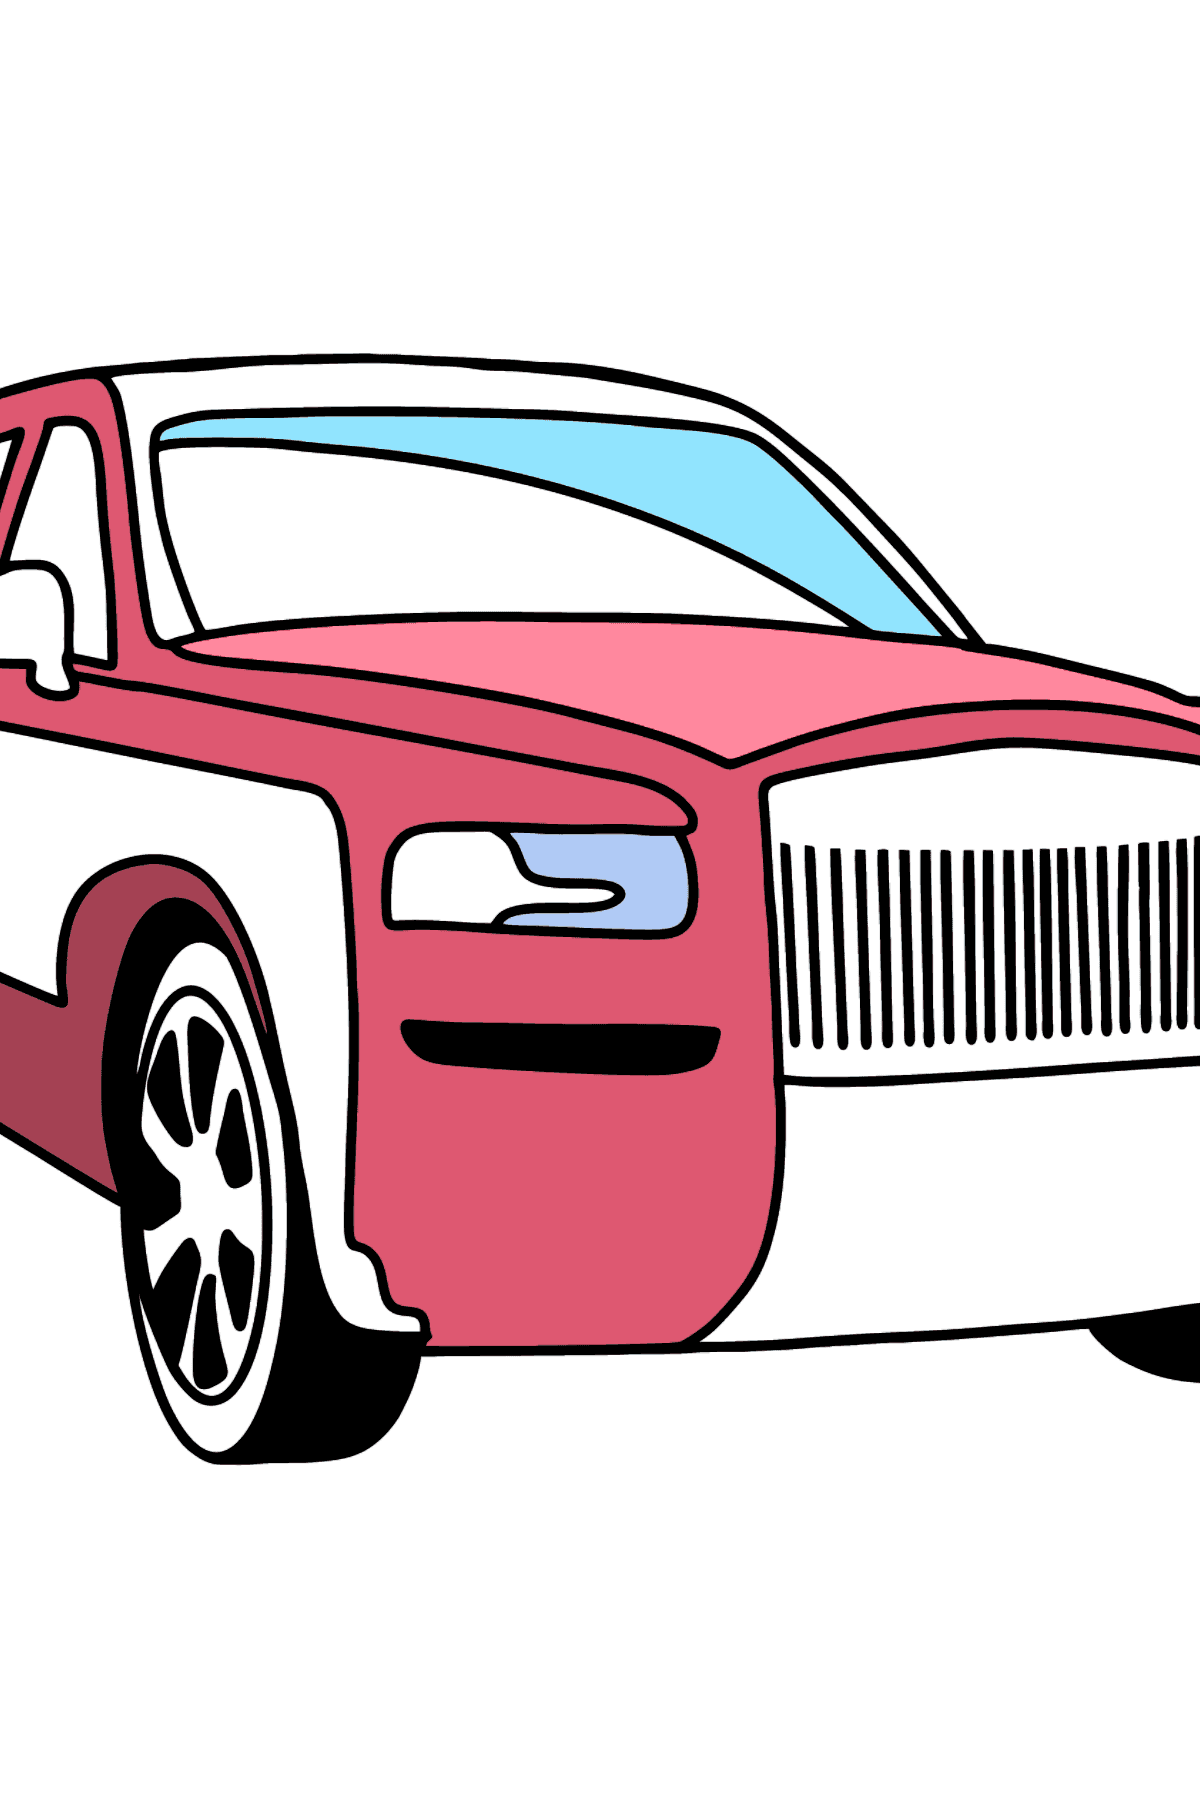 Rolls Royce Cullinan Car coloring page - Coloring Pages for Kids